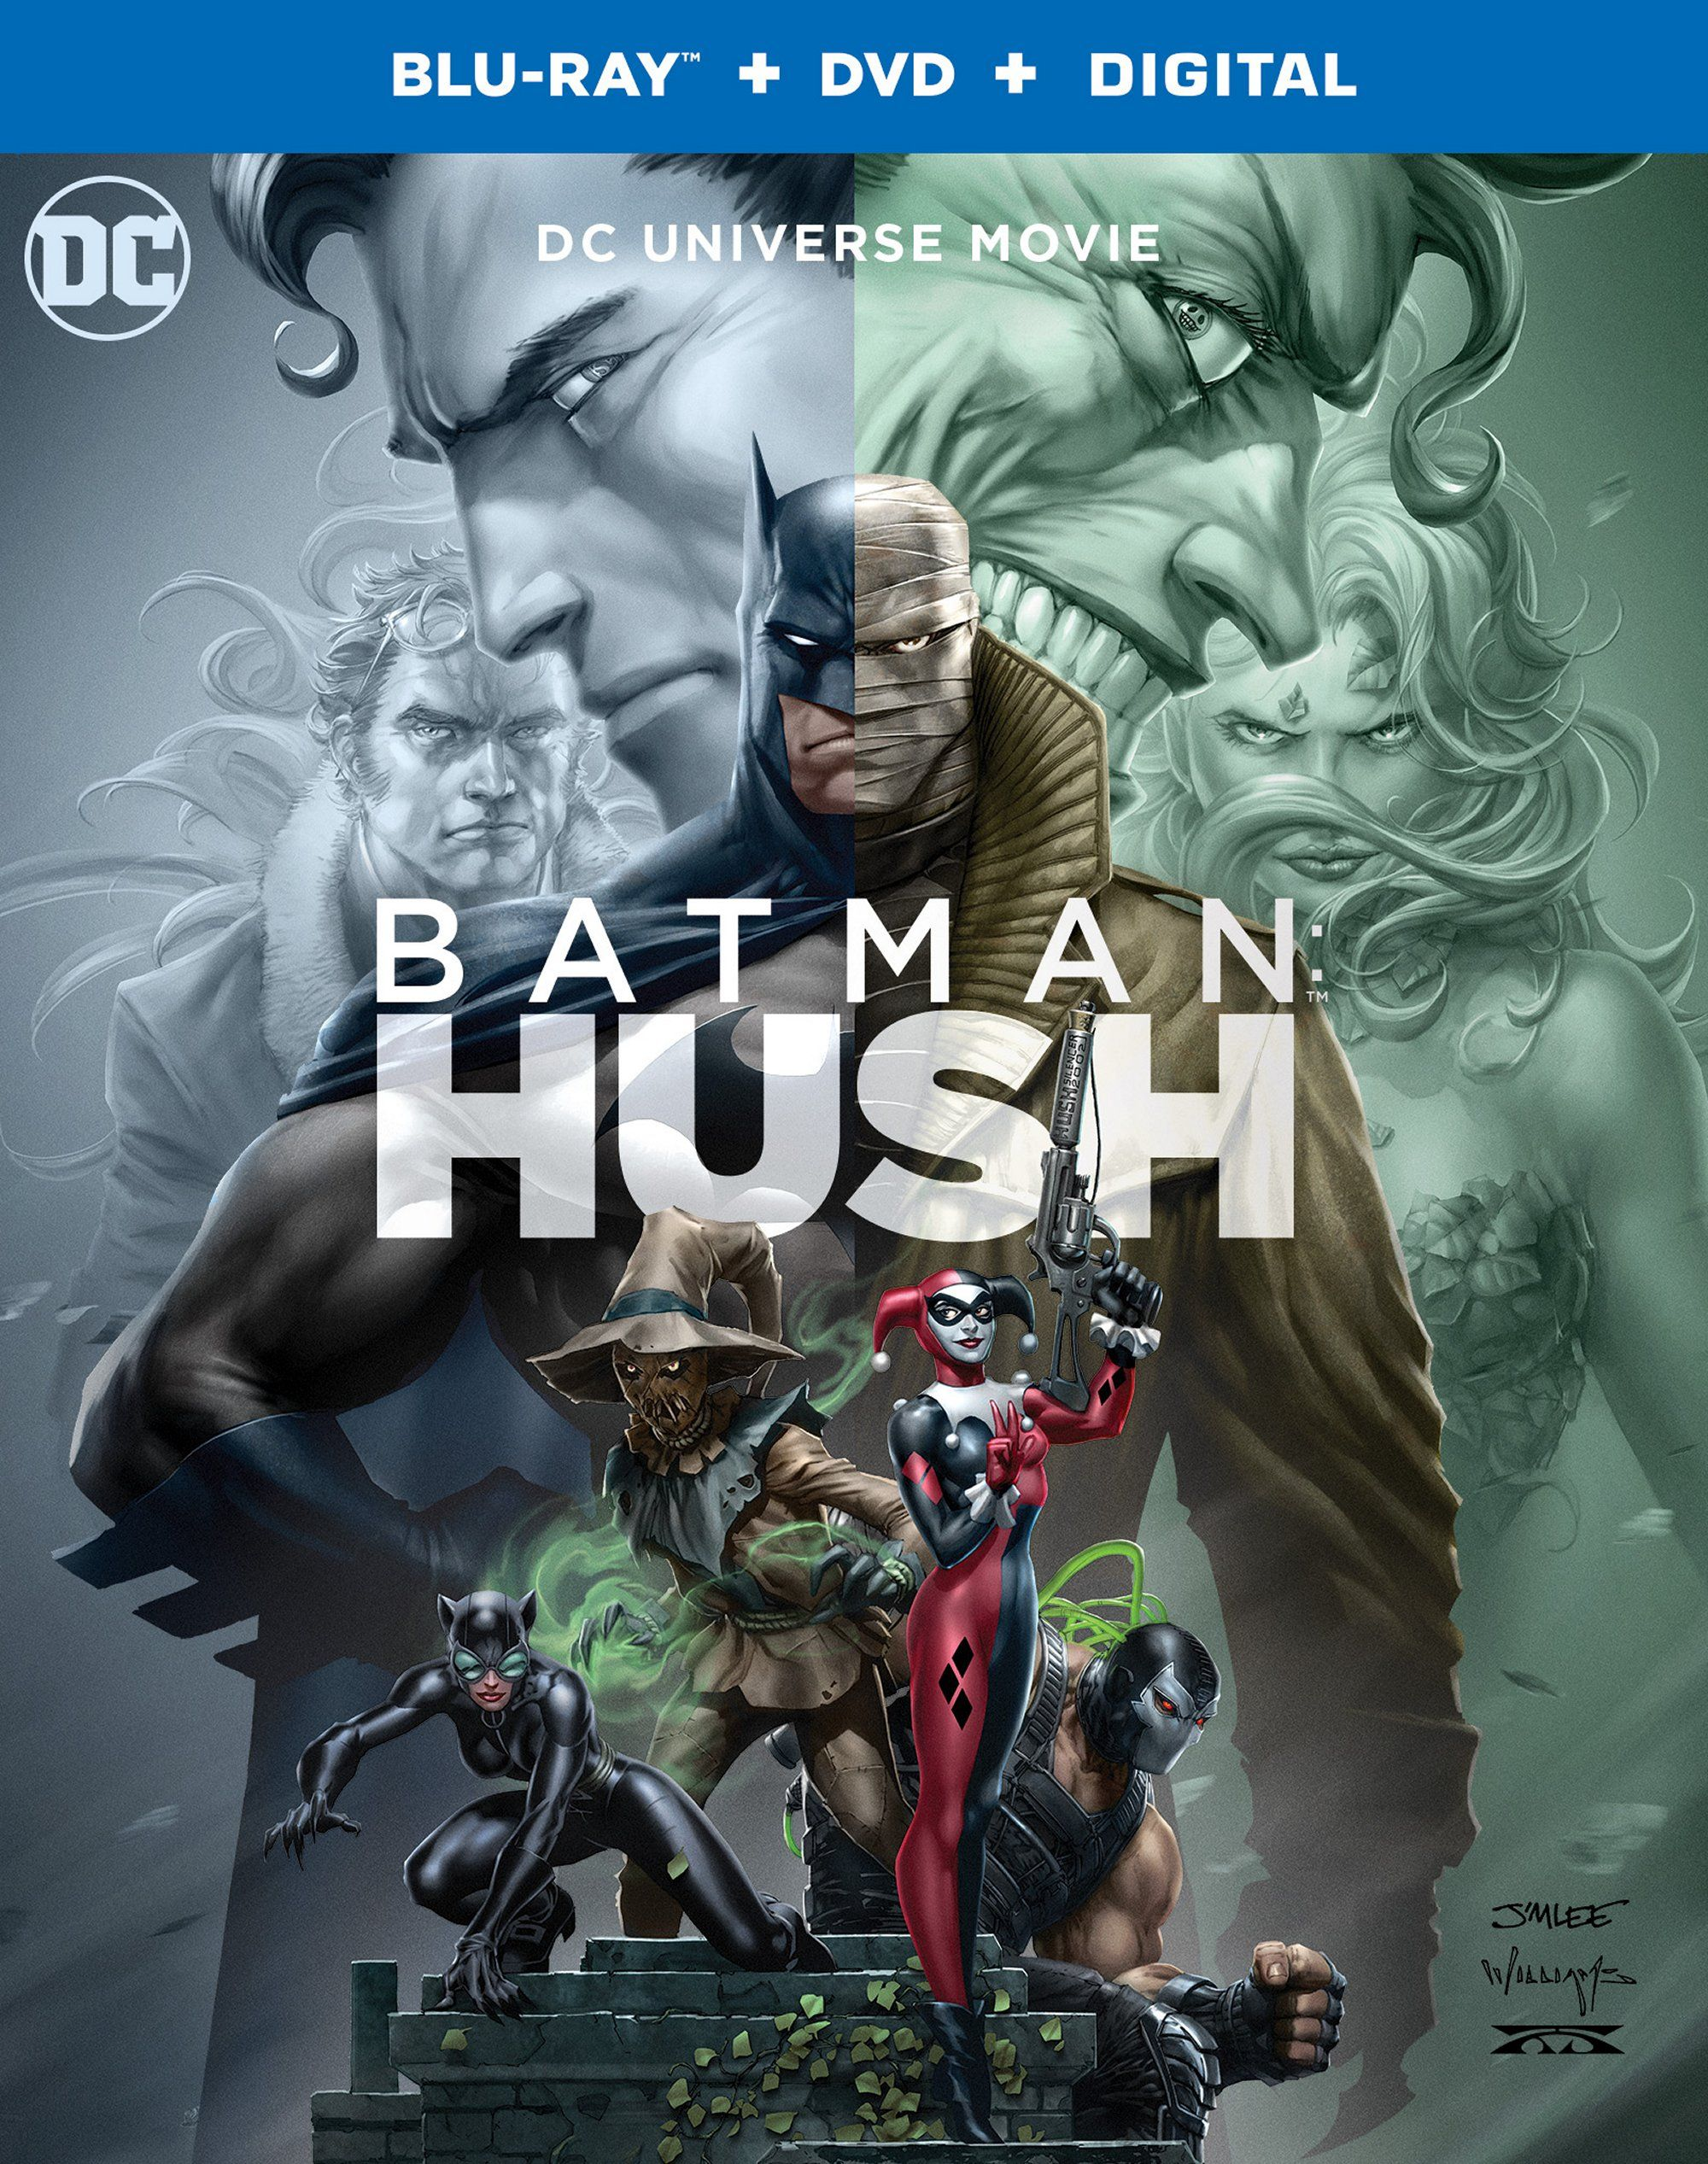 Batman: Hush Digital, 4K, Blu-ray, DVD Review and Bonus